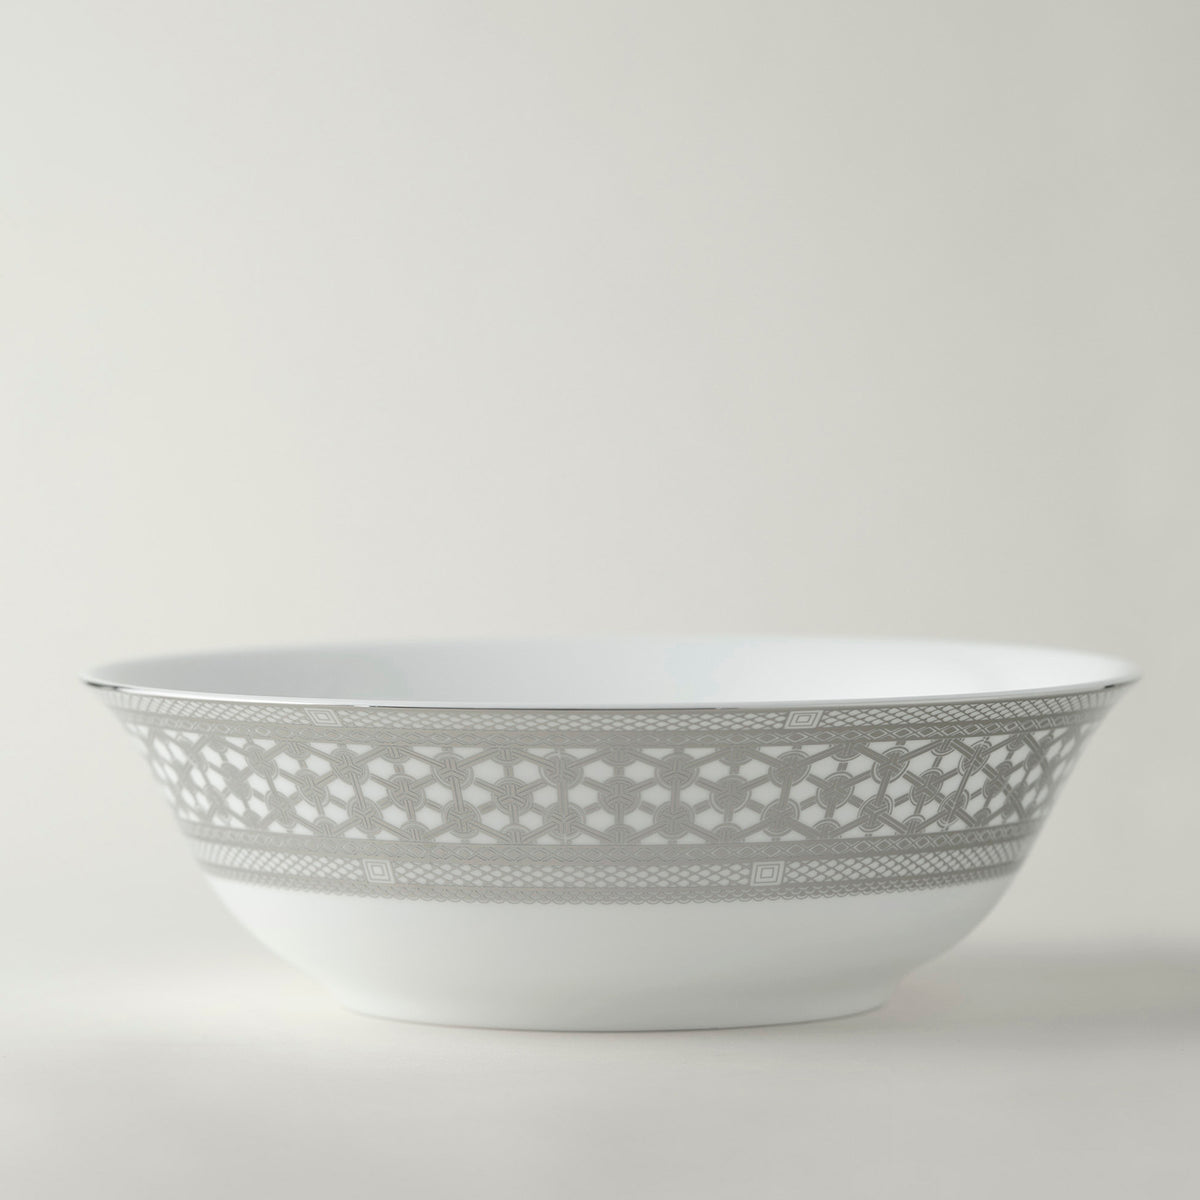 "HAWTHORNE ICE 9.5"" Medium Serving Bowl - PL - Caskata"